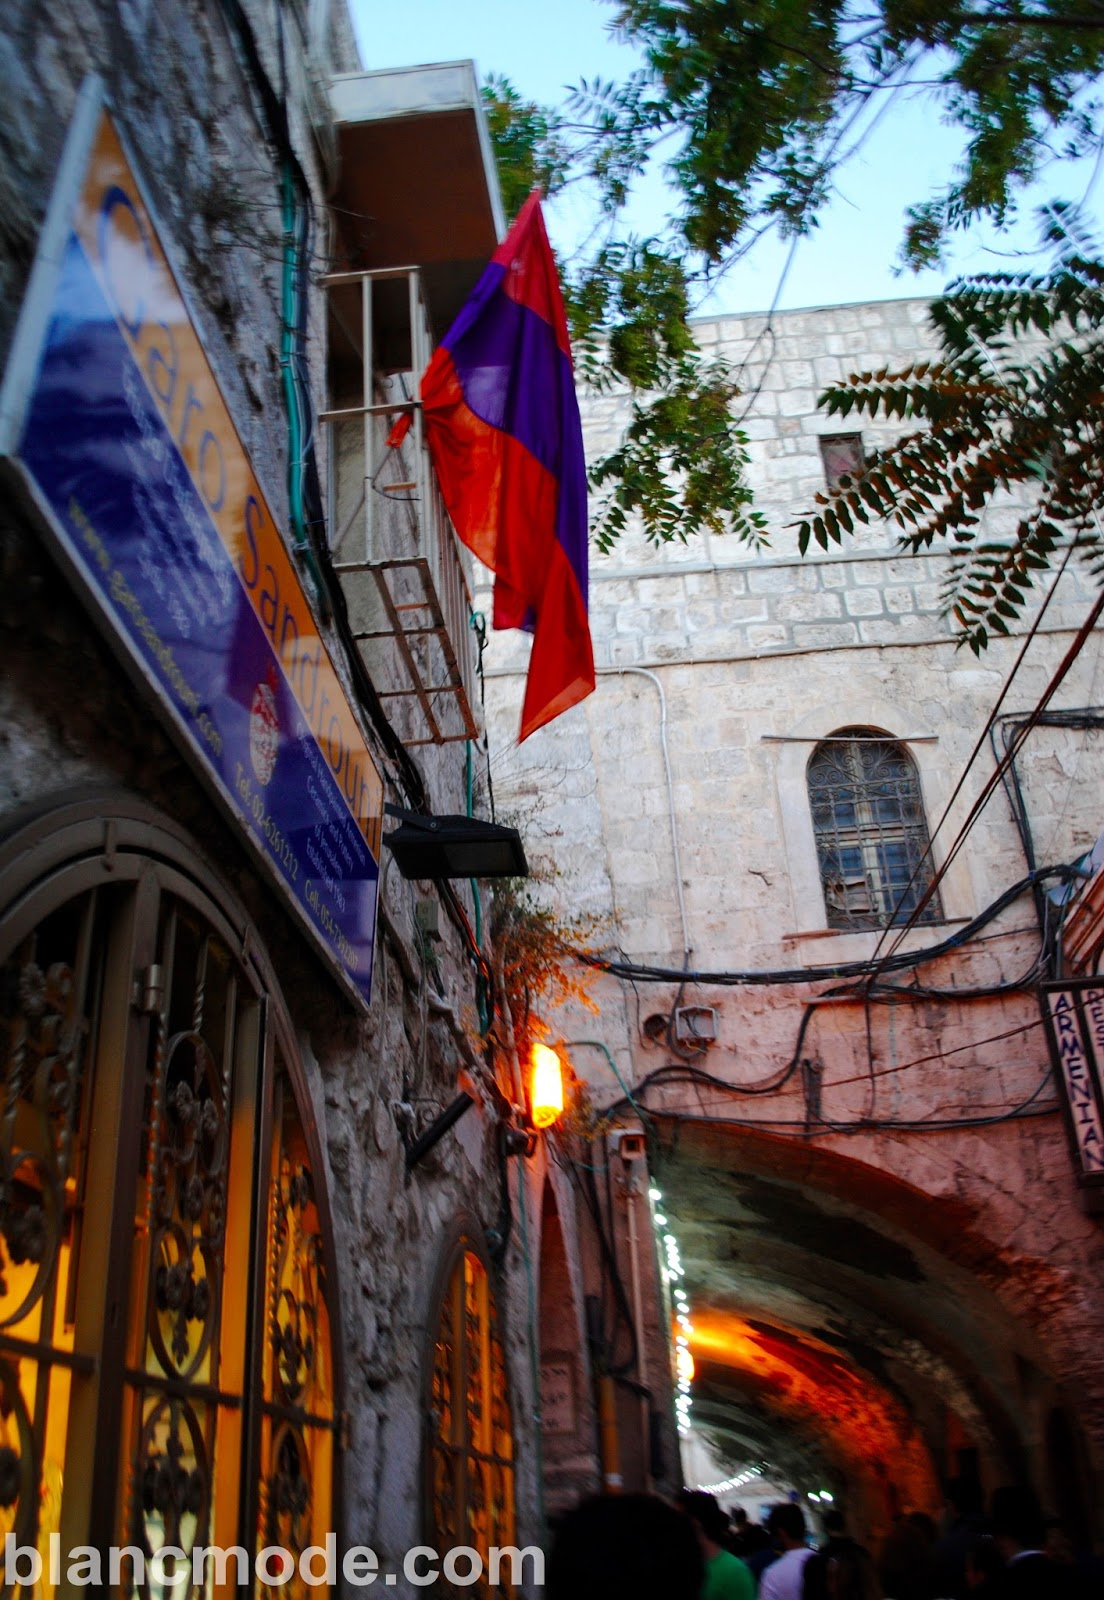 armenian quarter in jerusalem